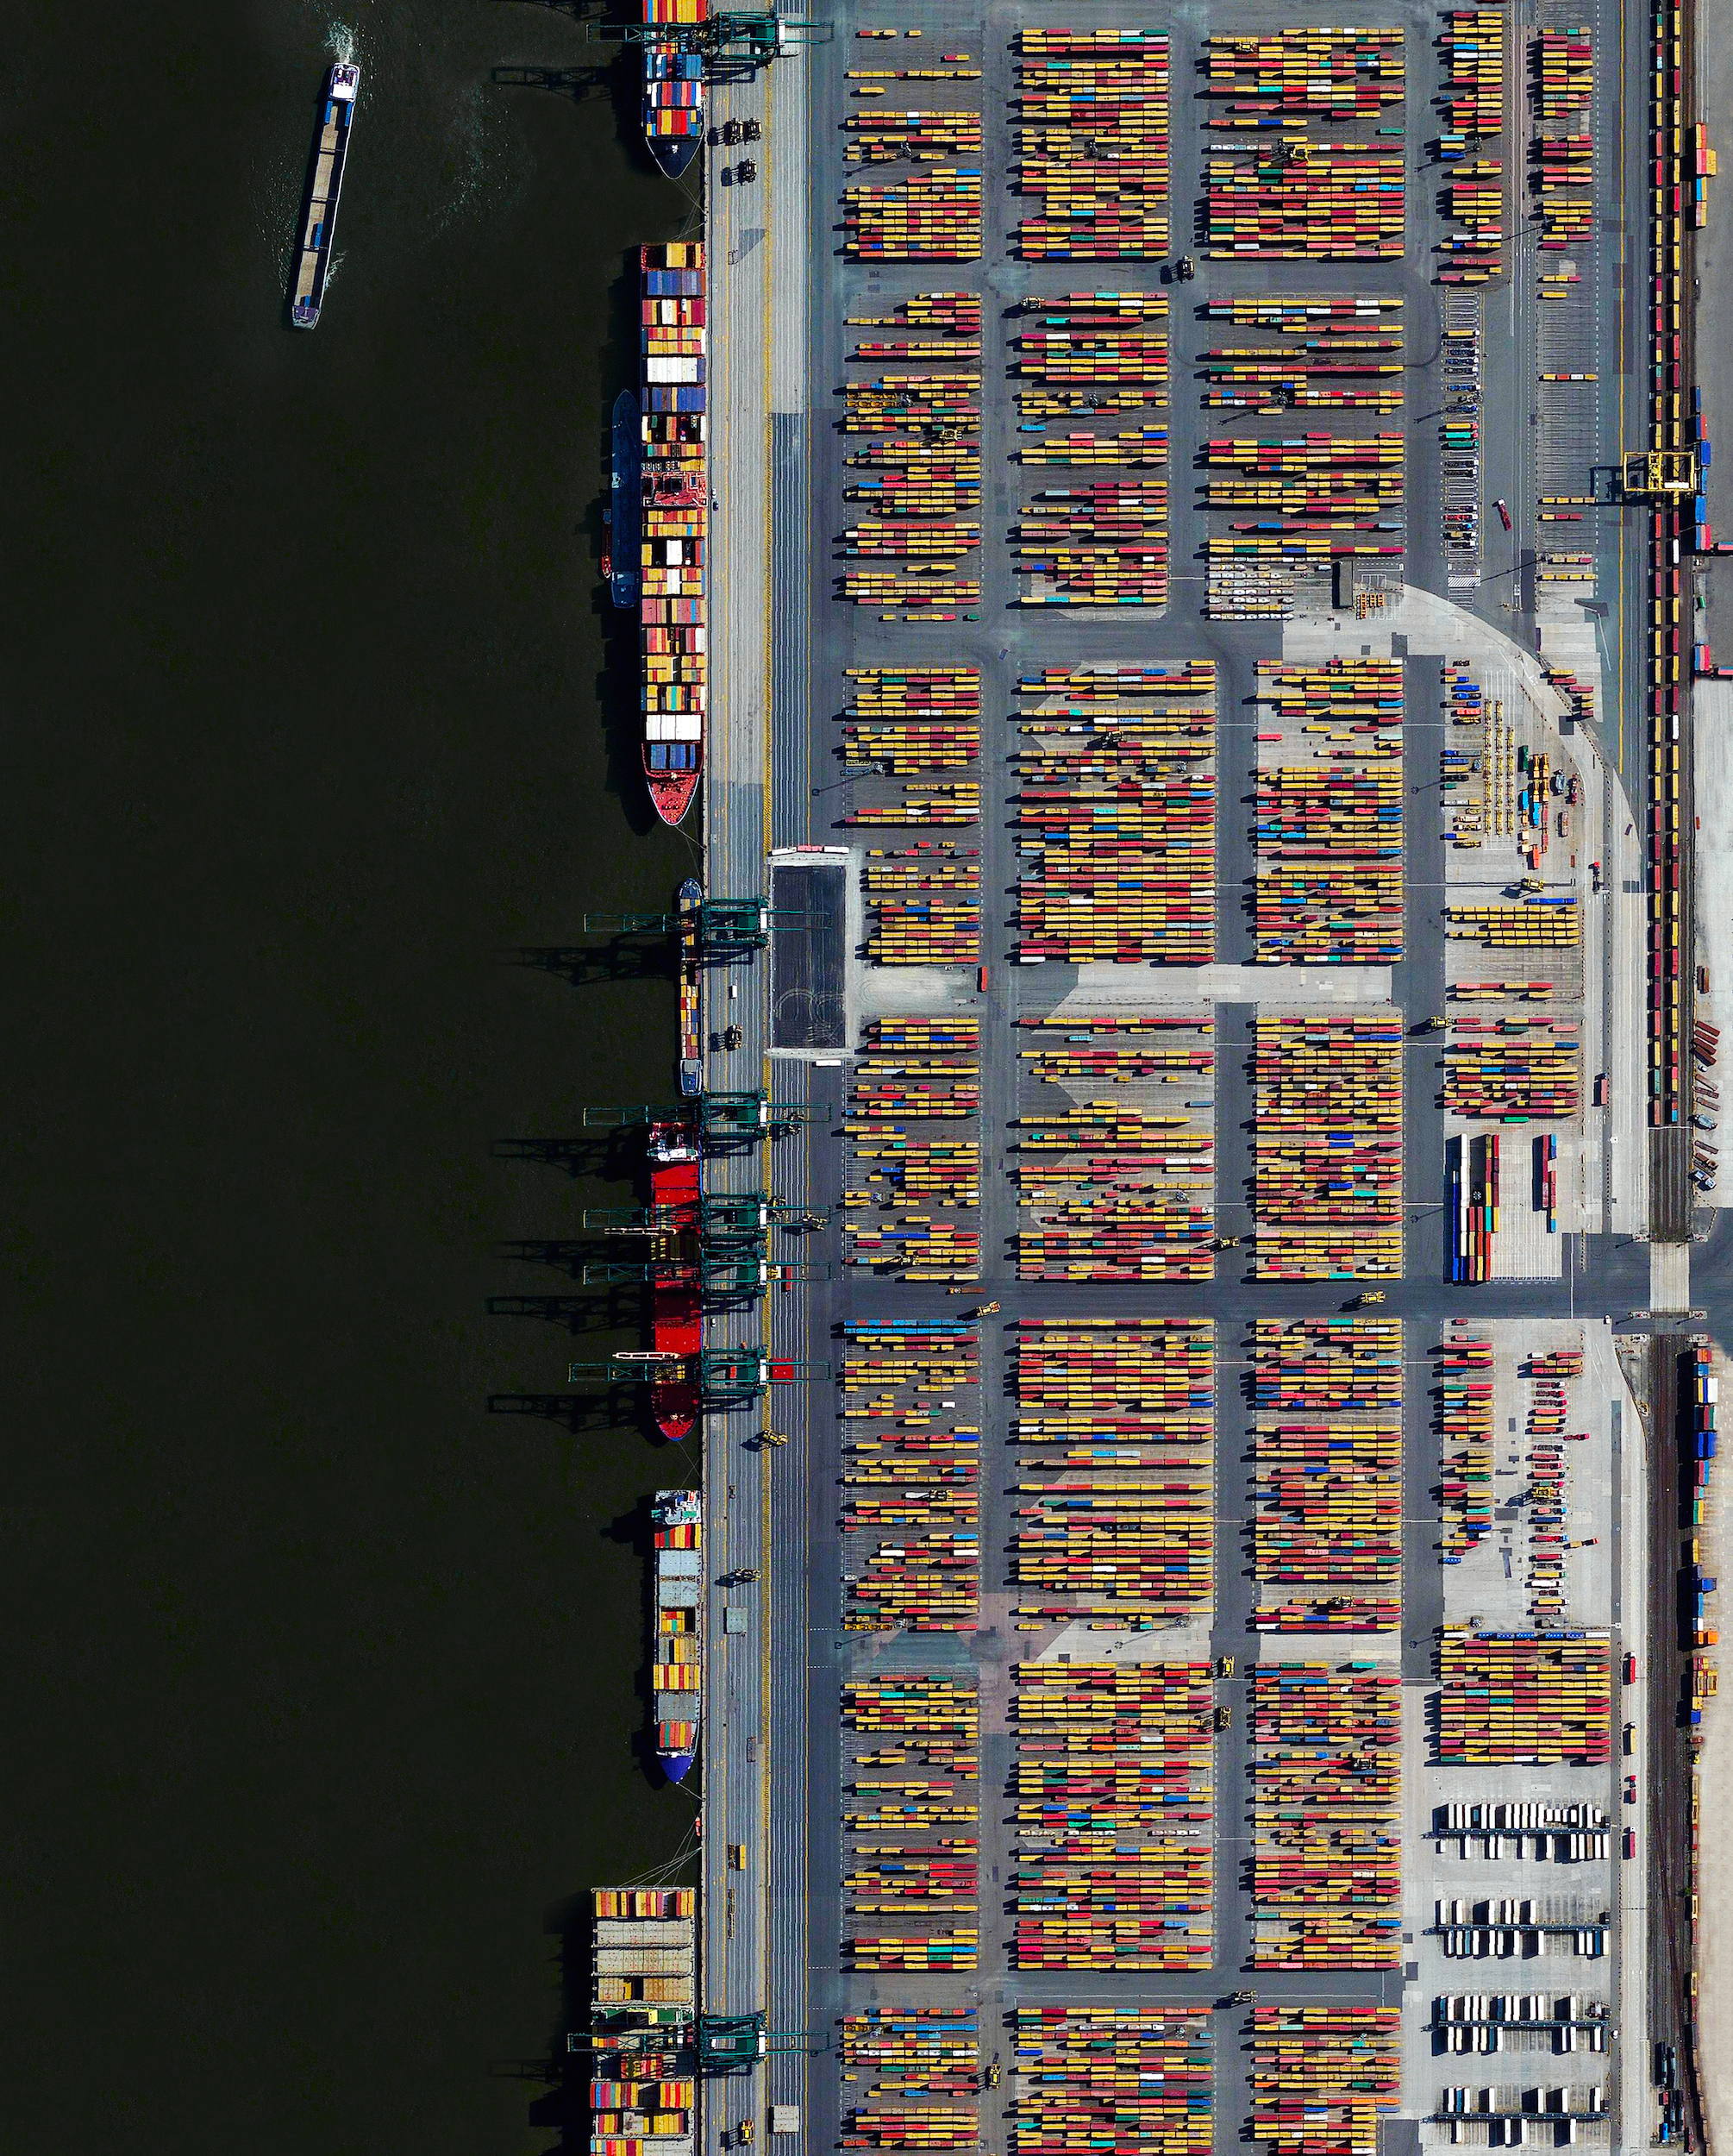 1/26/2016   Port of Antwerp   Antwerp, Belgium  51.322990, 4.326734    The Port of Antwerp in Belgium is the second largest seaport in Europe. In one year alone the facility handles more than 71,000 vessels and 314 million tons of cargo. That weight is roughly equal to 68% of the mass of all living humans on the planet.